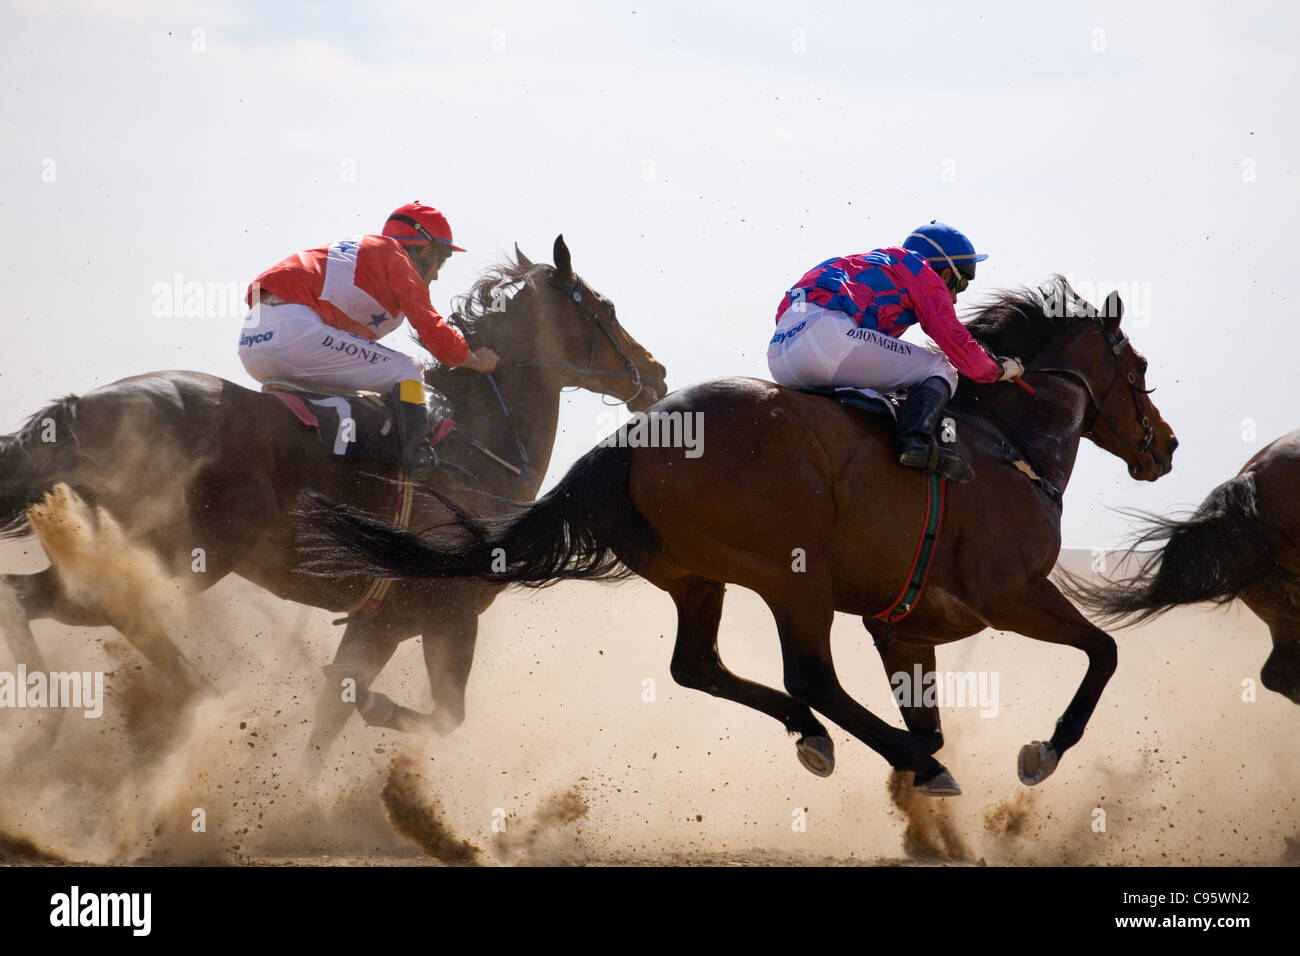 Horse racing in the outback at the Birdsville Cup Races.  Birdsville, Queensland, Australia - Stock Image